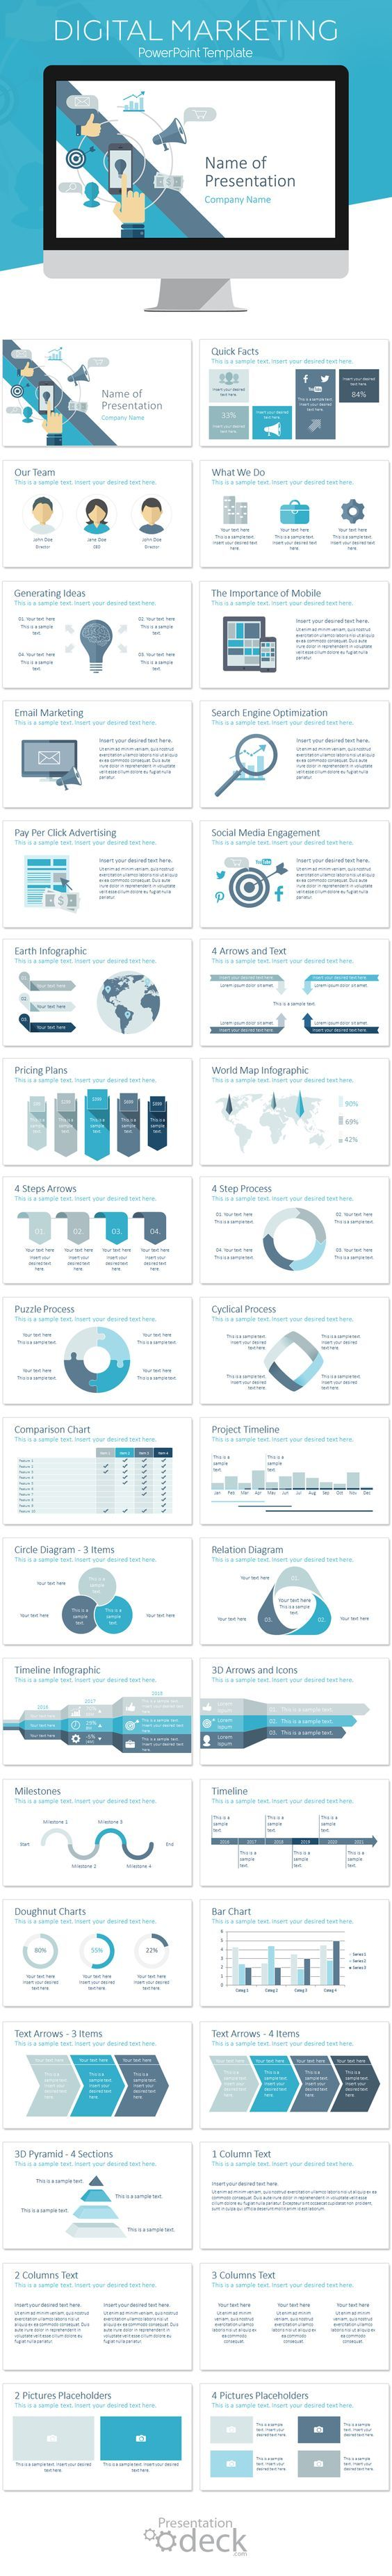 Digital marketing PowerPoint template in flat design style including 36 pre-designed slides. This theme is perfect for digital agencies, for presentations on marketing strategies, SEO, SMM, lead generation, etc. #presentations #business #conversion: